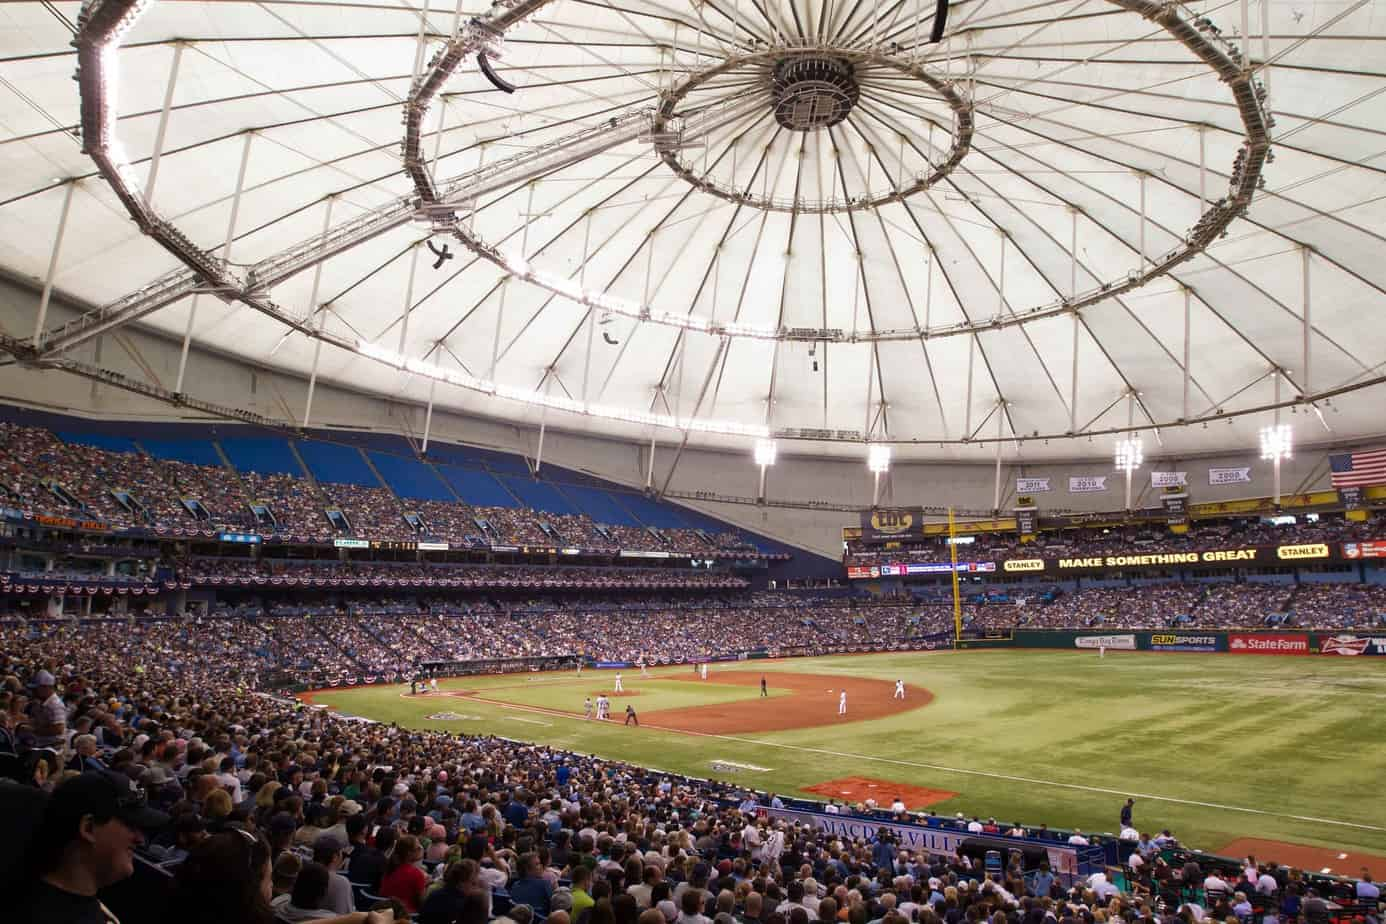 Roof of Tropicana Field